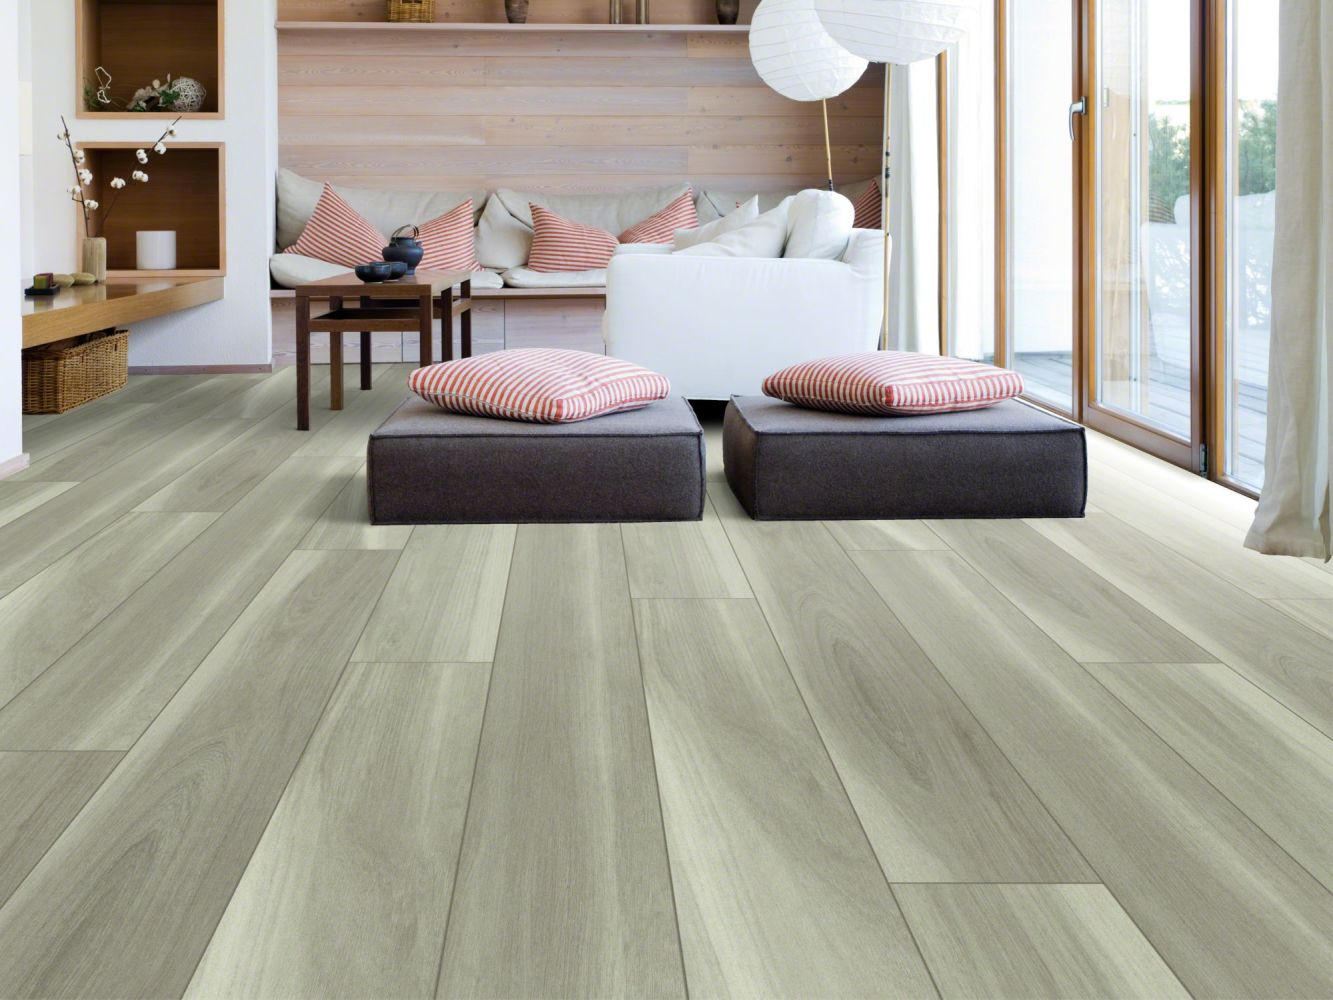 Shaw Floors Resilient Residential Whiskey Oak 720c Plus Misty Oak 05008_516SA